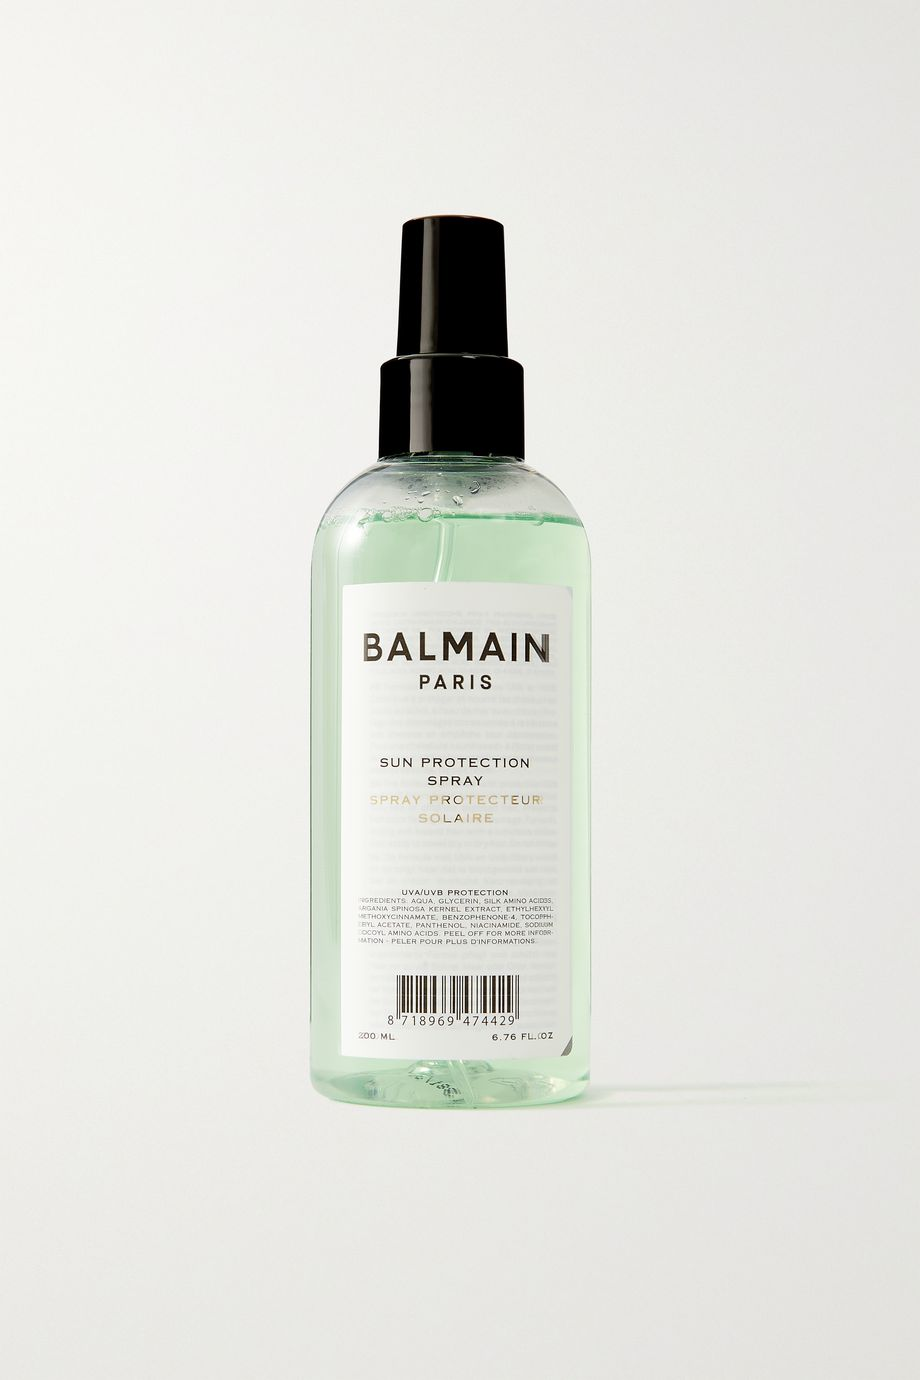 BALMAIN PARIS HAIR COUTURE Sun Protection Spray, 200ml